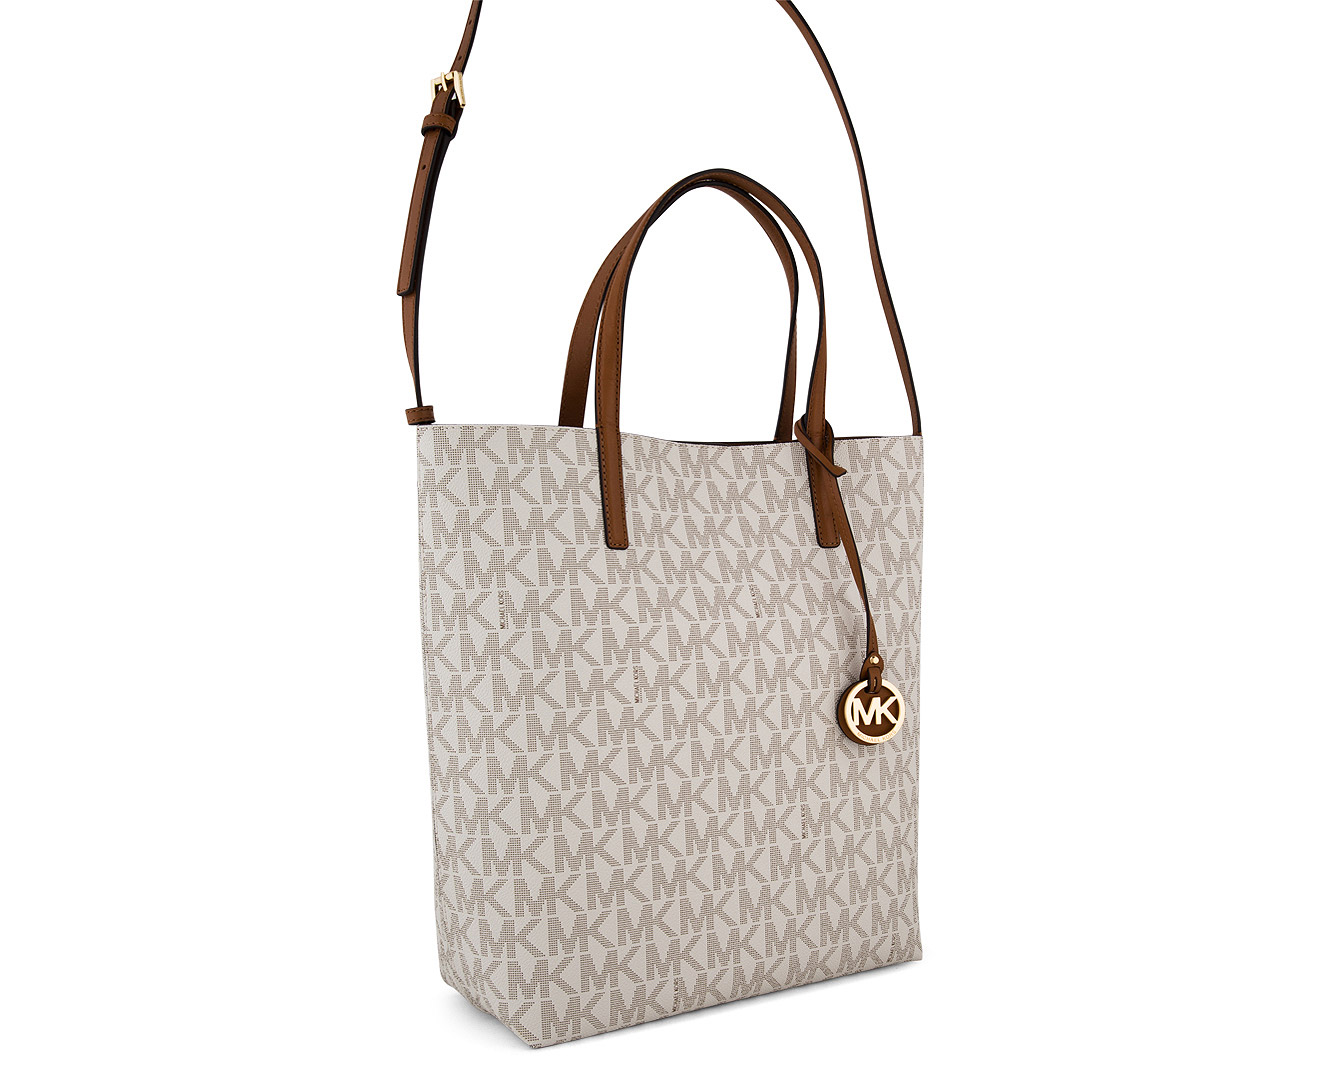 3f1d4b43c6f535 Michael Kors Hayley Large Logo North-South Tote Bag - Vanilla/Acorn |  Catch.com.au